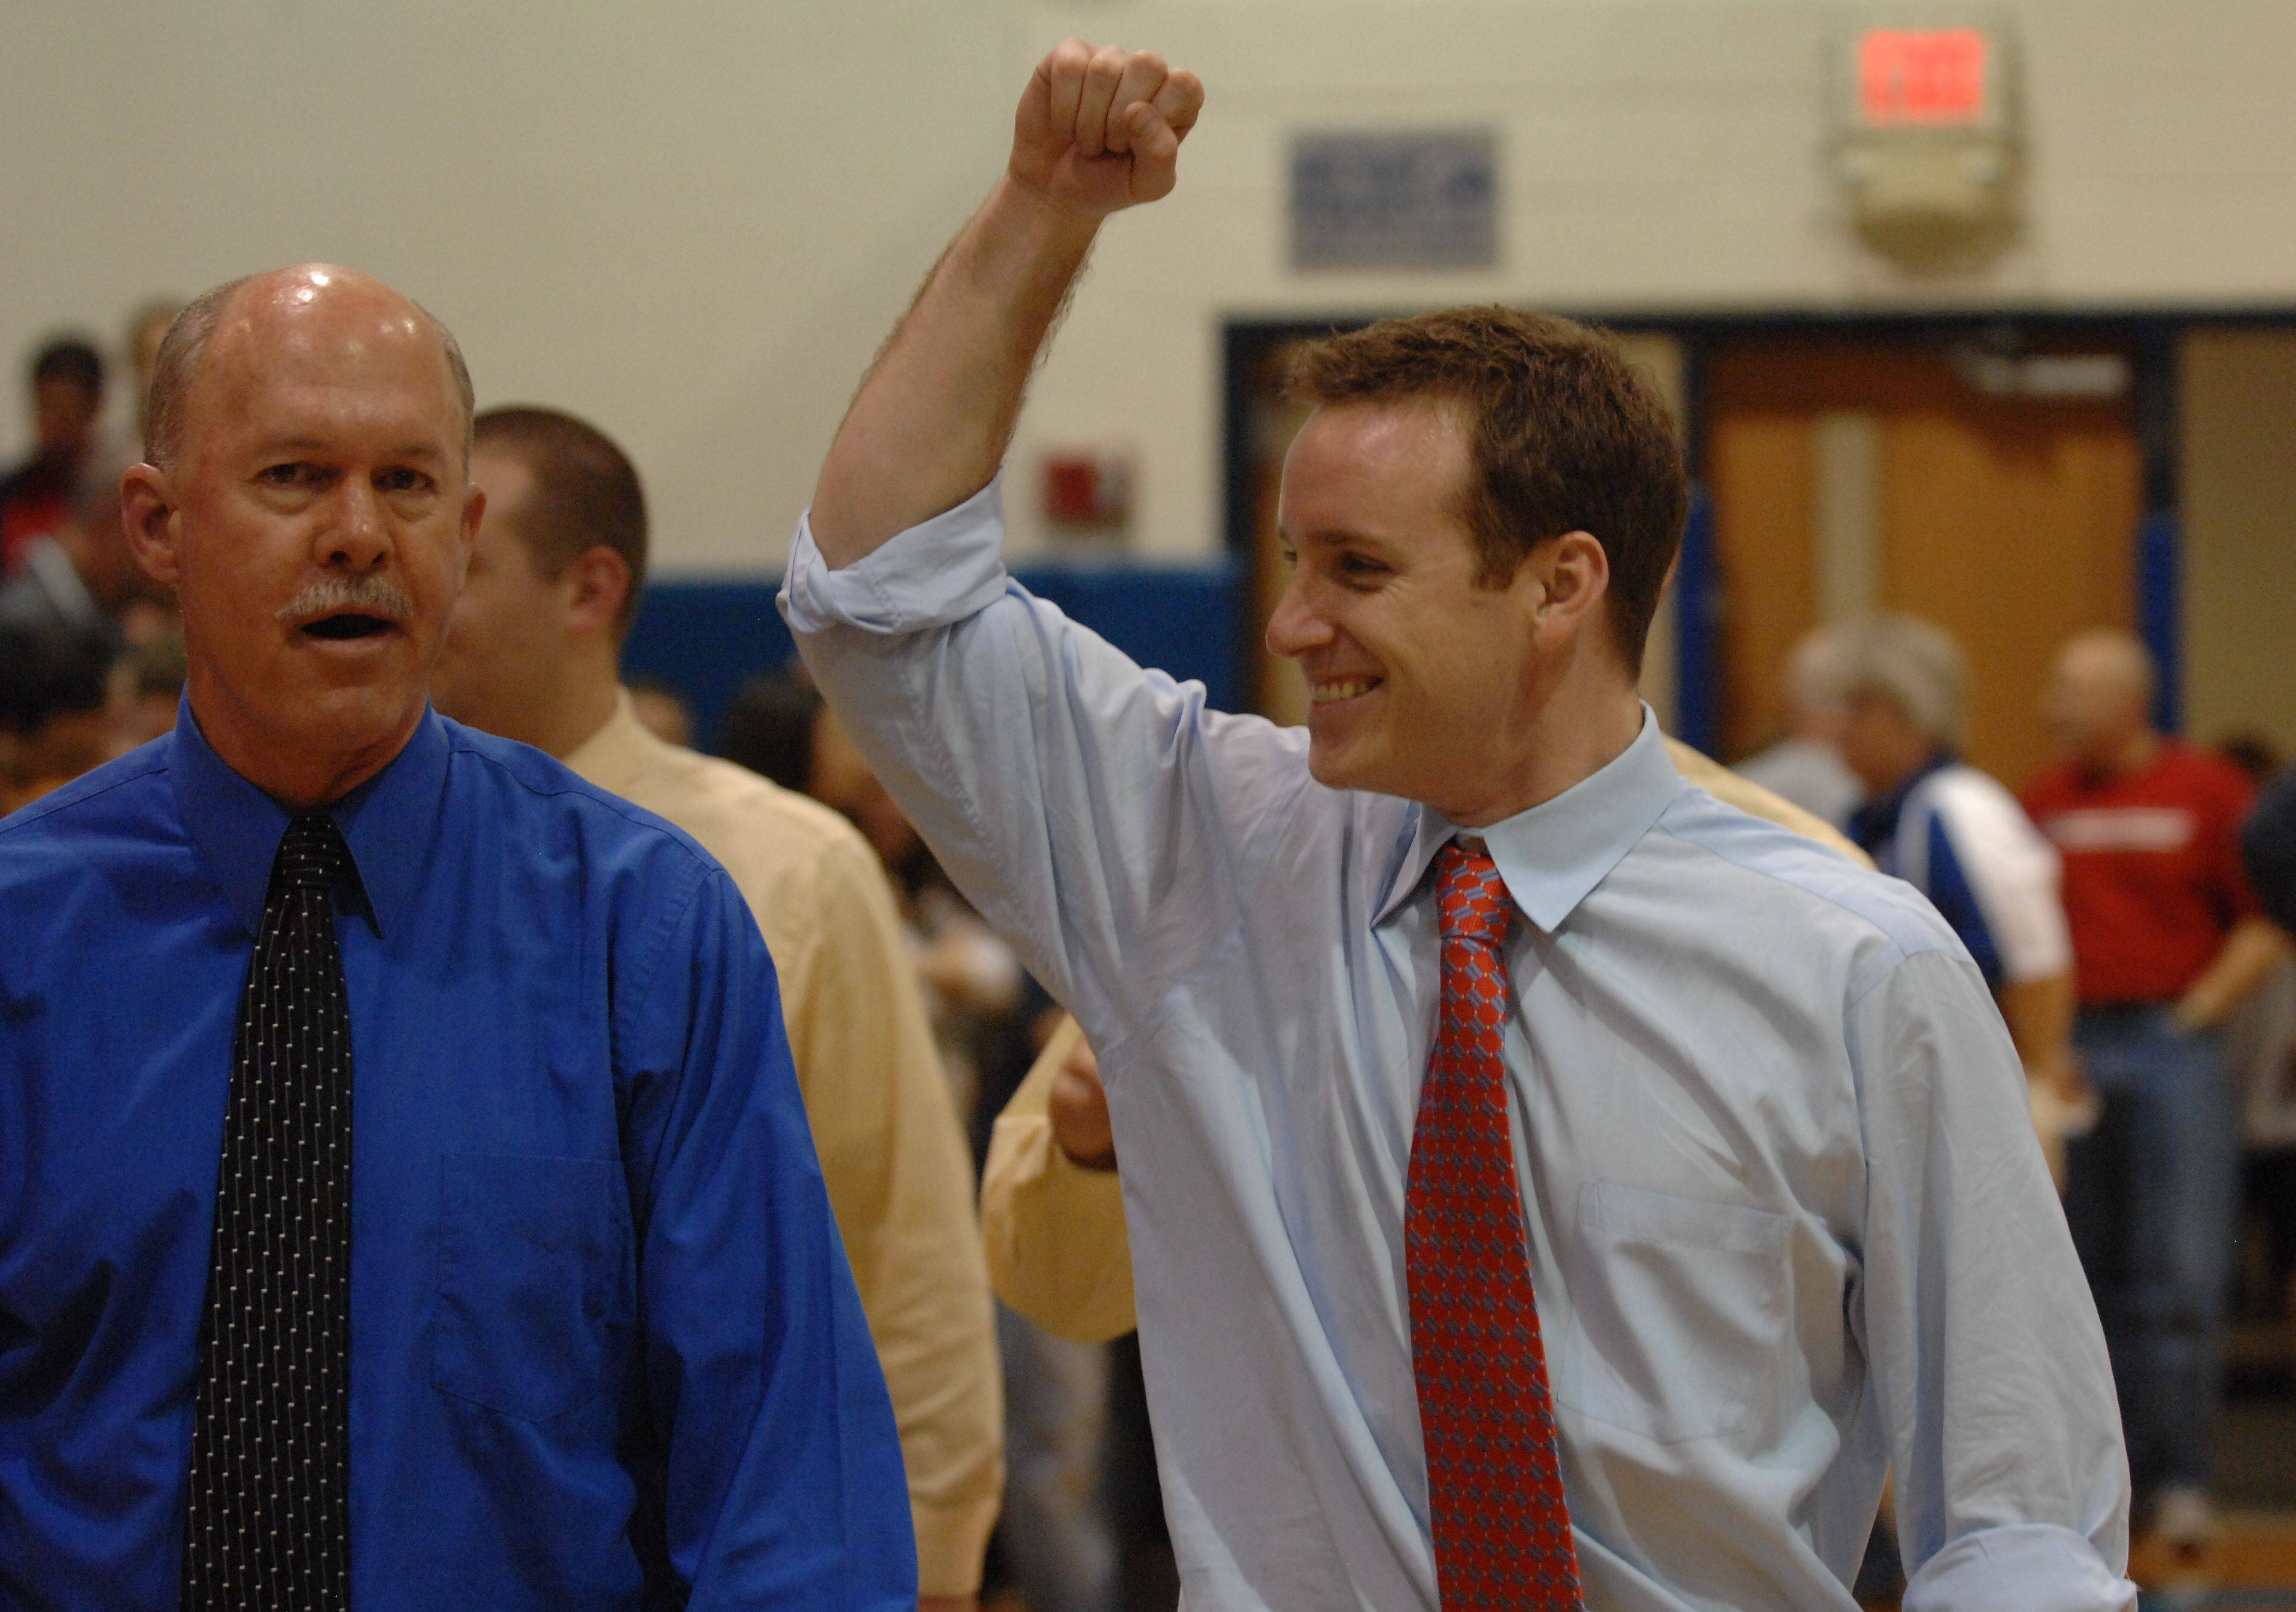 St. Viator boys basketball assistant coach and former star guard Mike Howland, right, has been named the program's new head coach. Howland replaces Joe Majkowski, left, who retired after 24 years in early April.